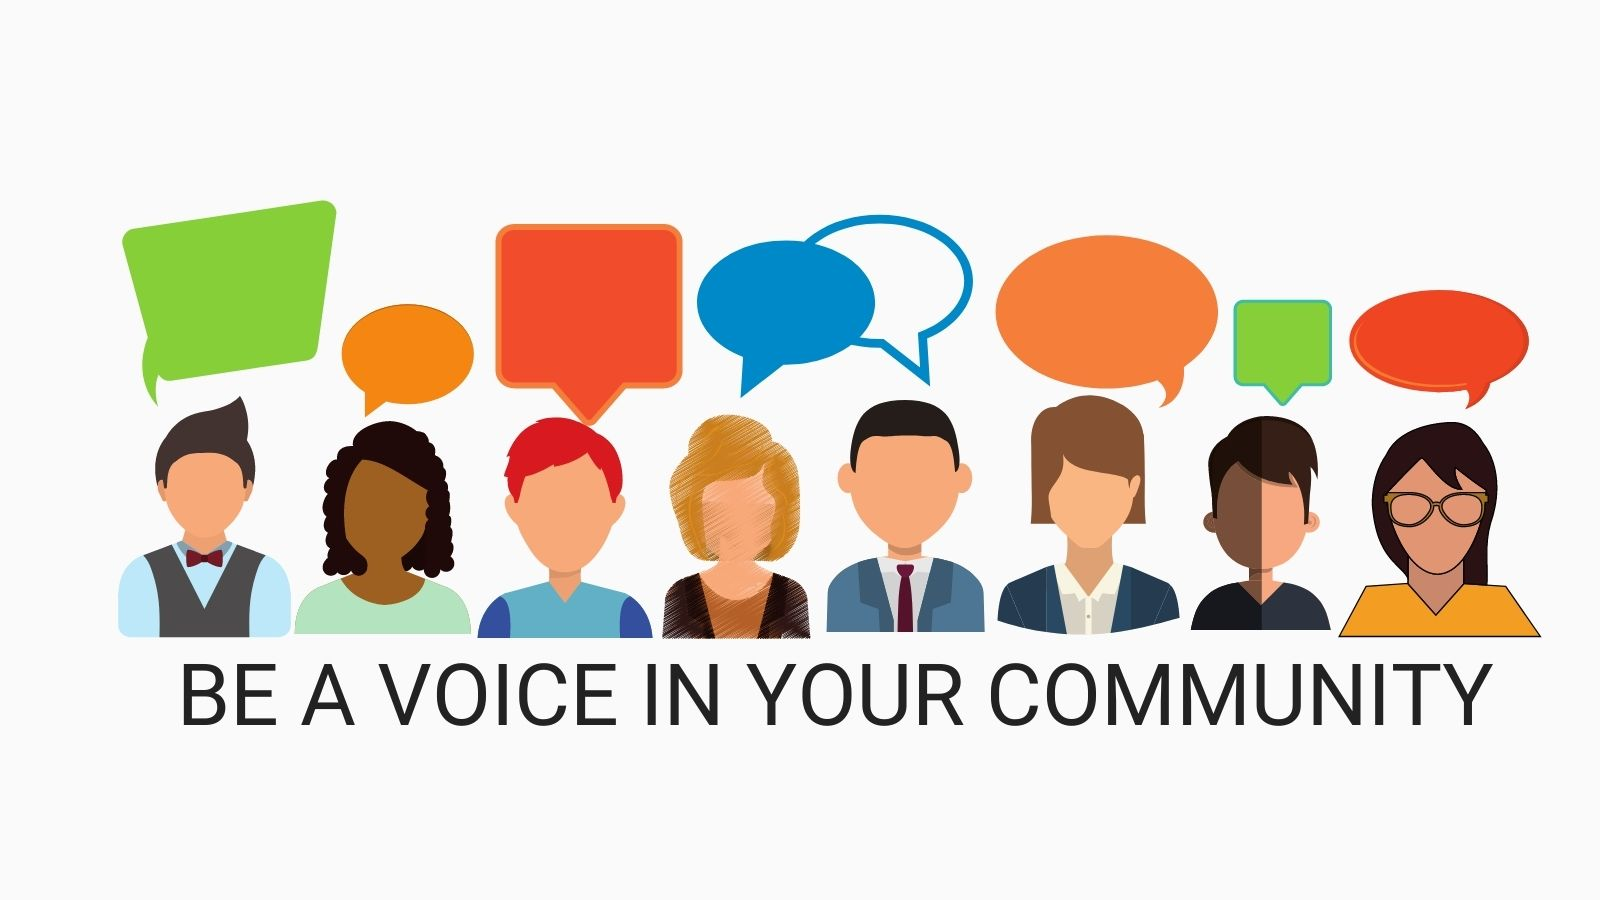 Be A Voice in Your Community banner